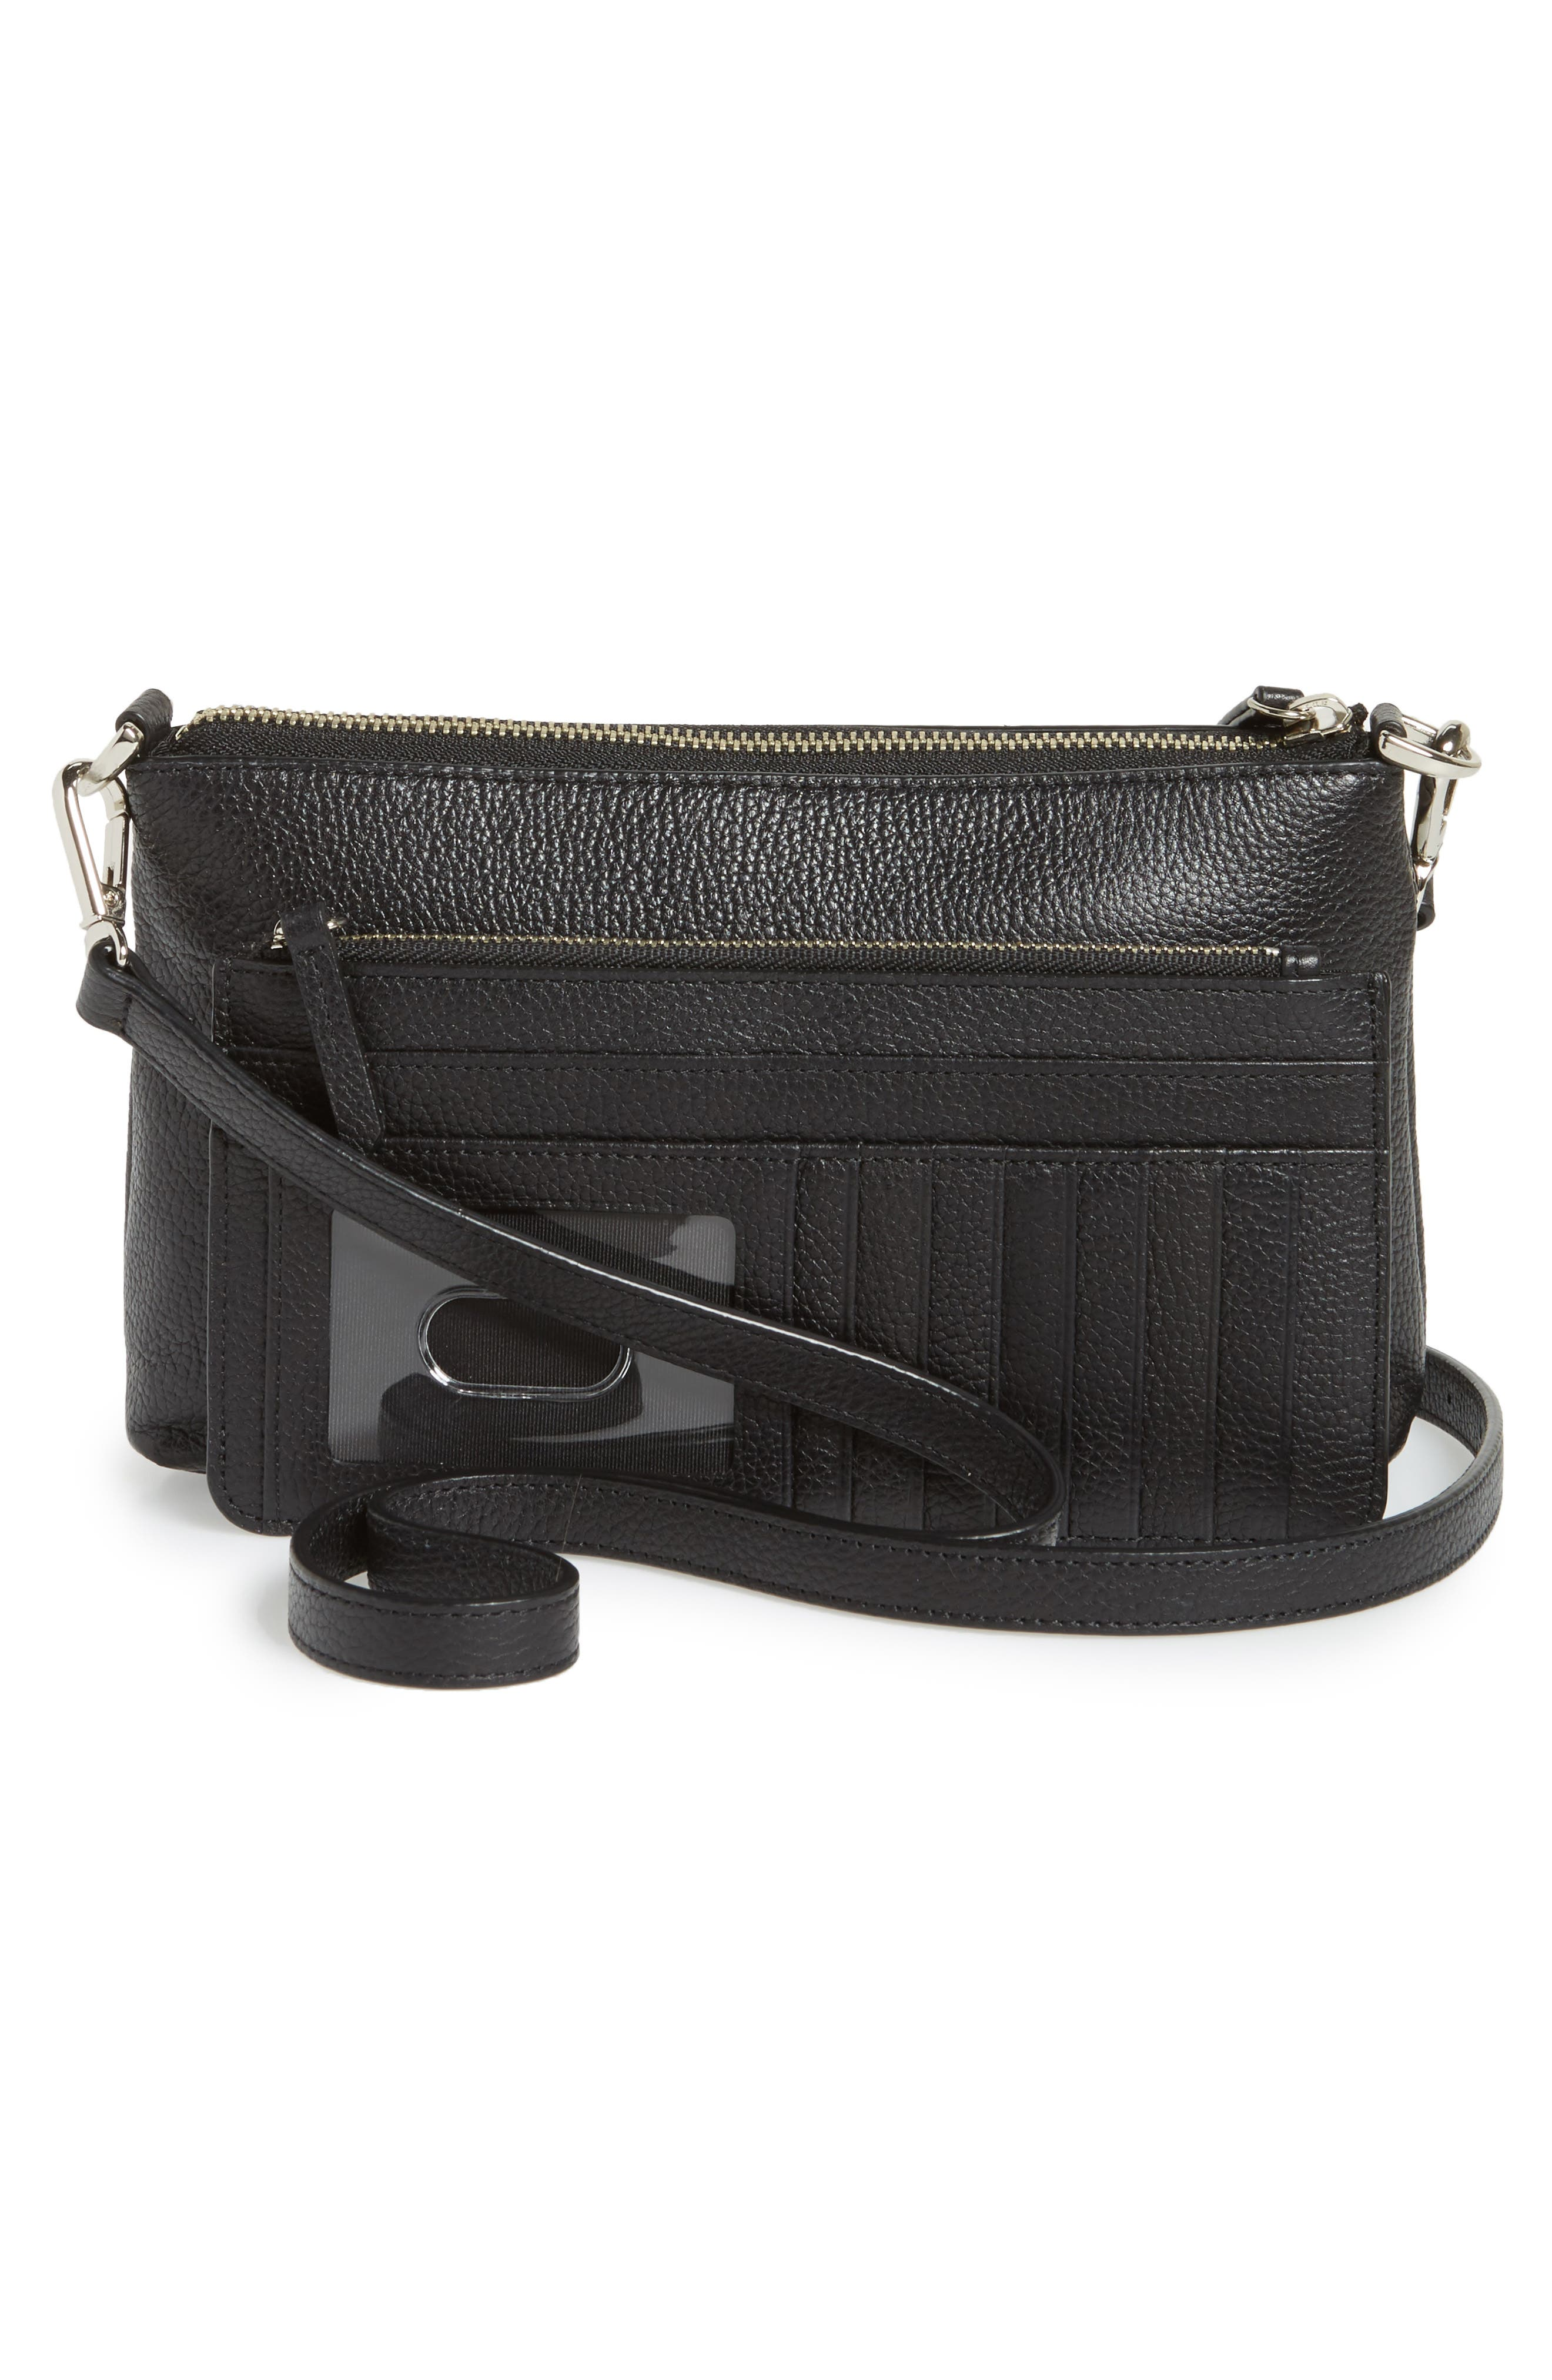 Brixton Convertible Leather Crossbody Bag with Pop-Out Card Holder,                             Alternate thumbnail 8, color,                             001